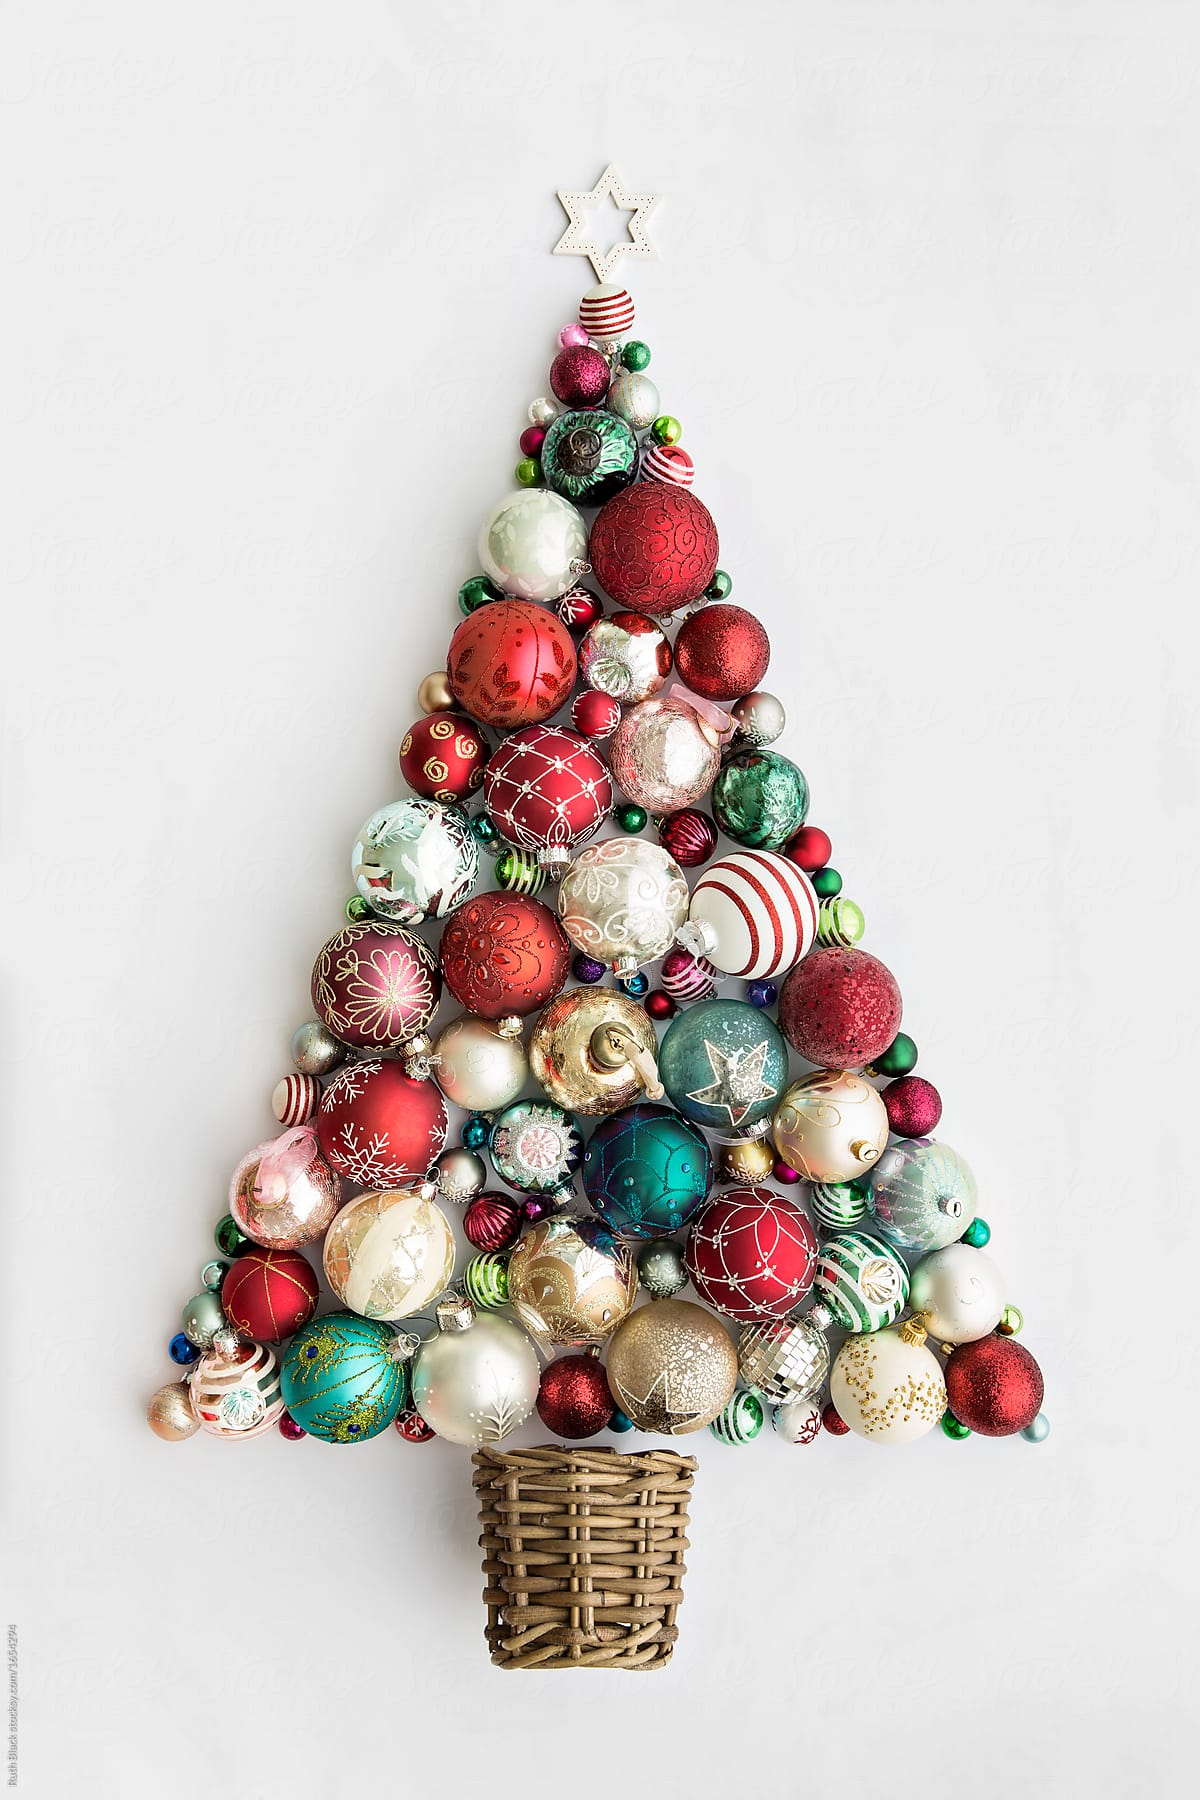 christmas tree made from christmas ornaments by ruth black for stocksy united